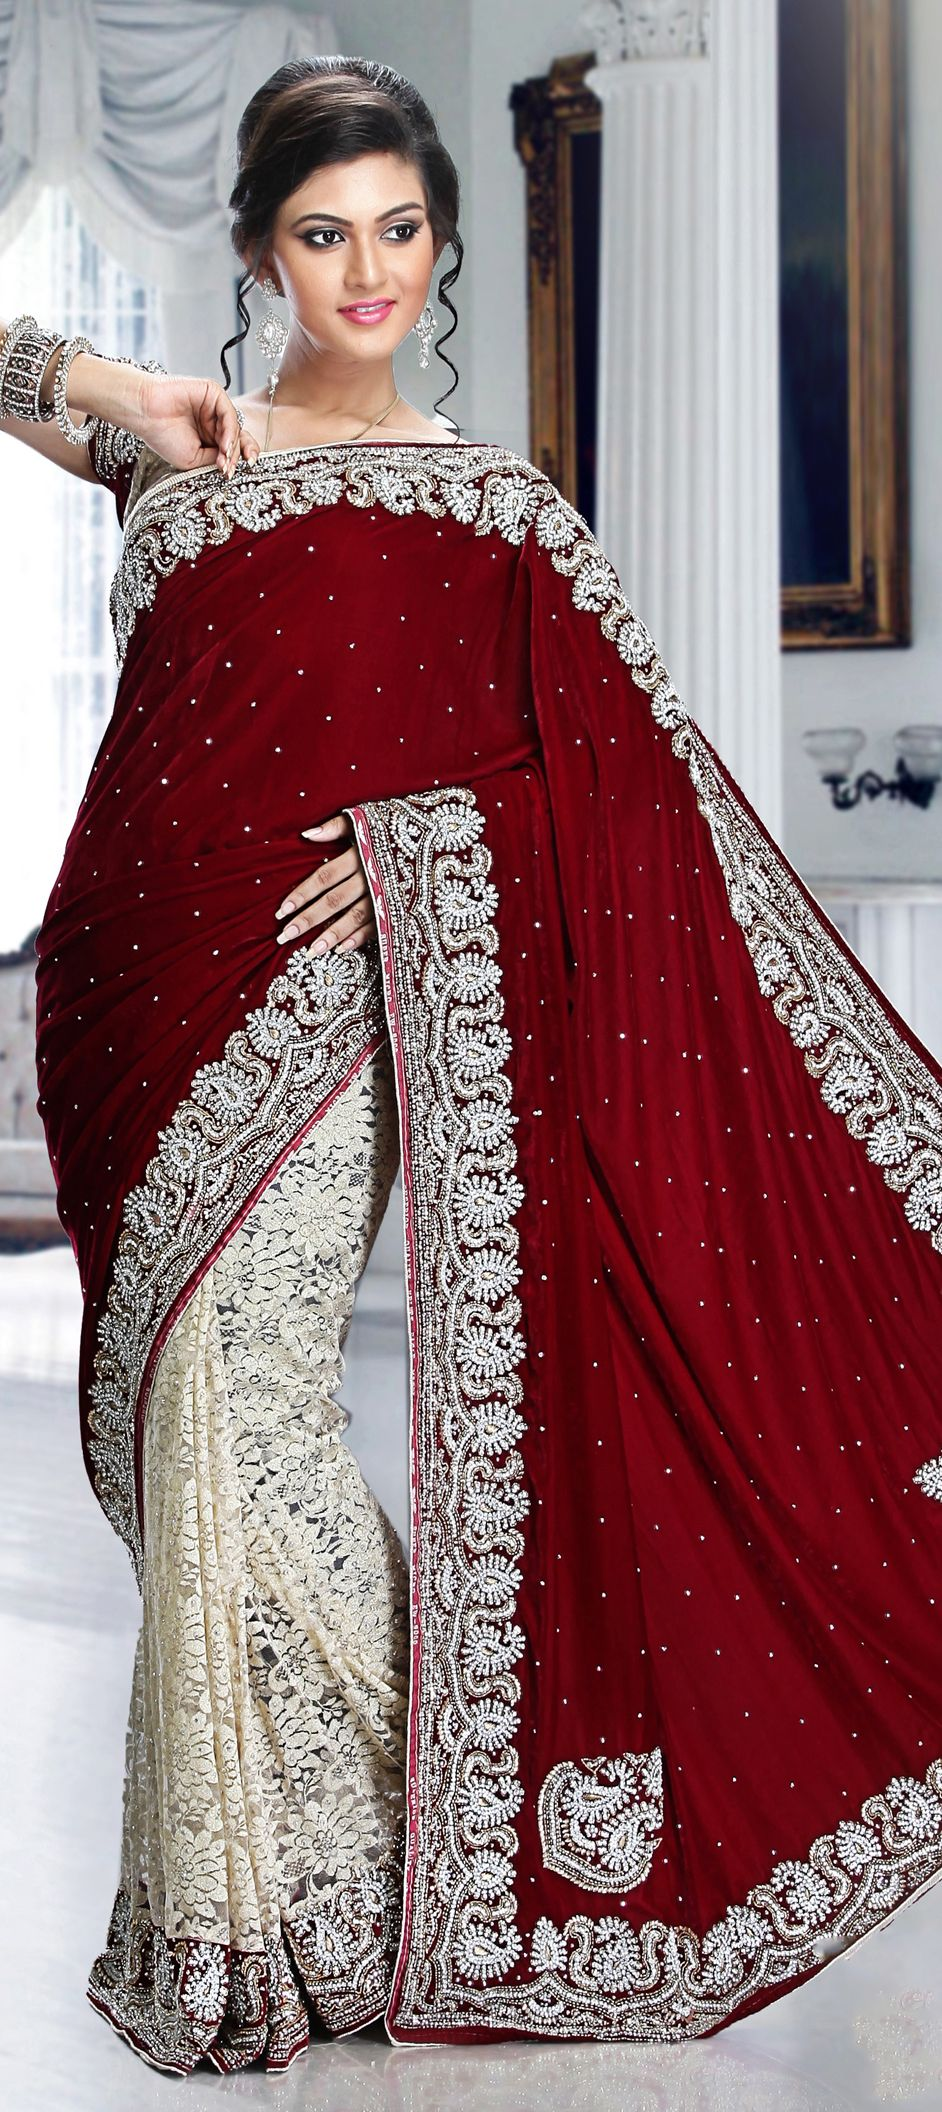 Hindu wedding dress   Red and Maroon White and Off White color family Bridal